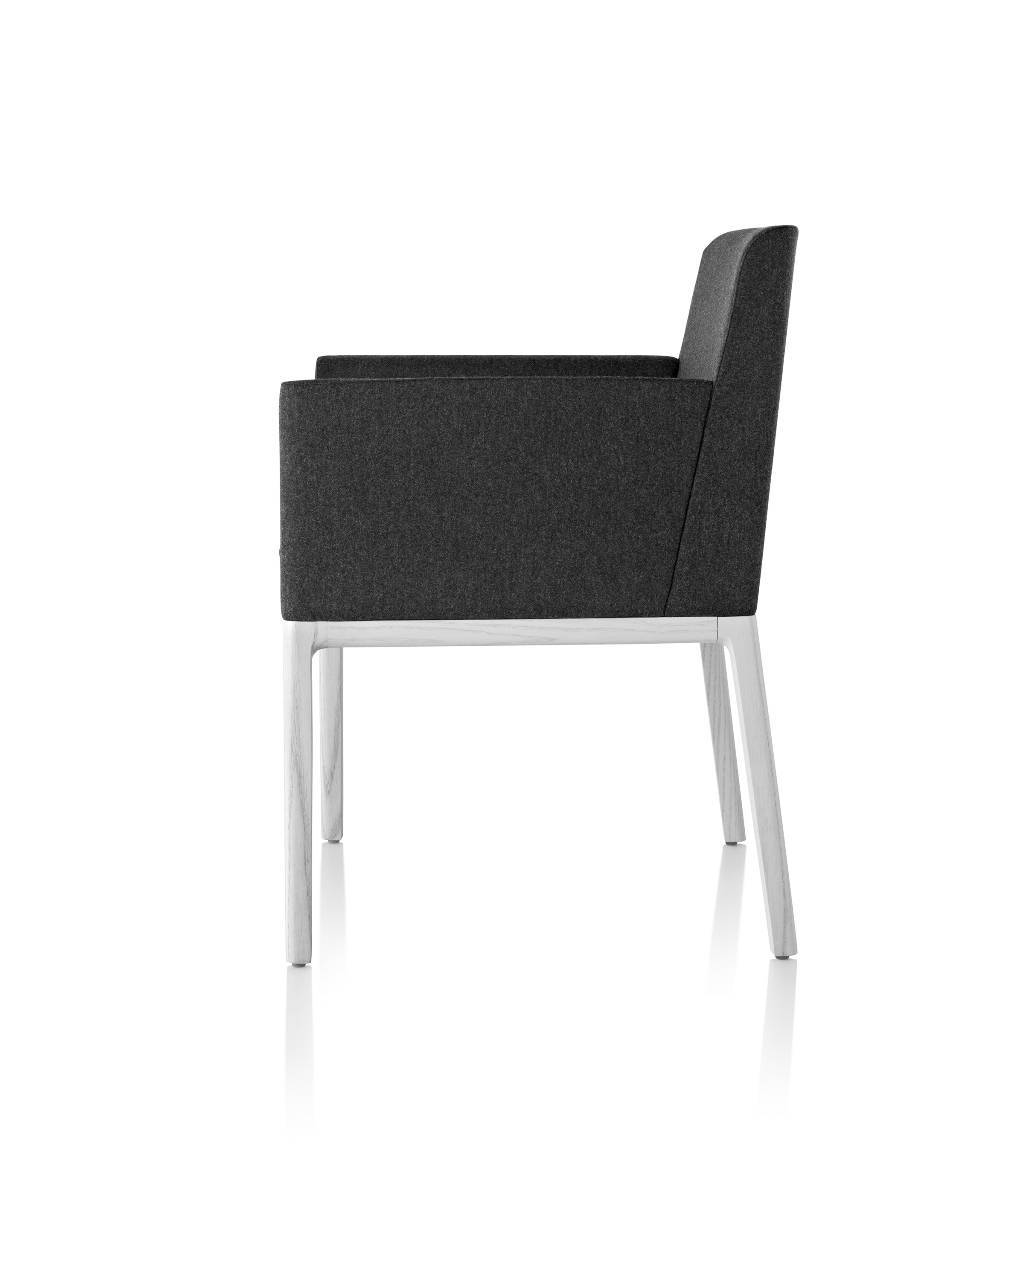 VVDA_Nessel for Geiger & Herman Miller_1